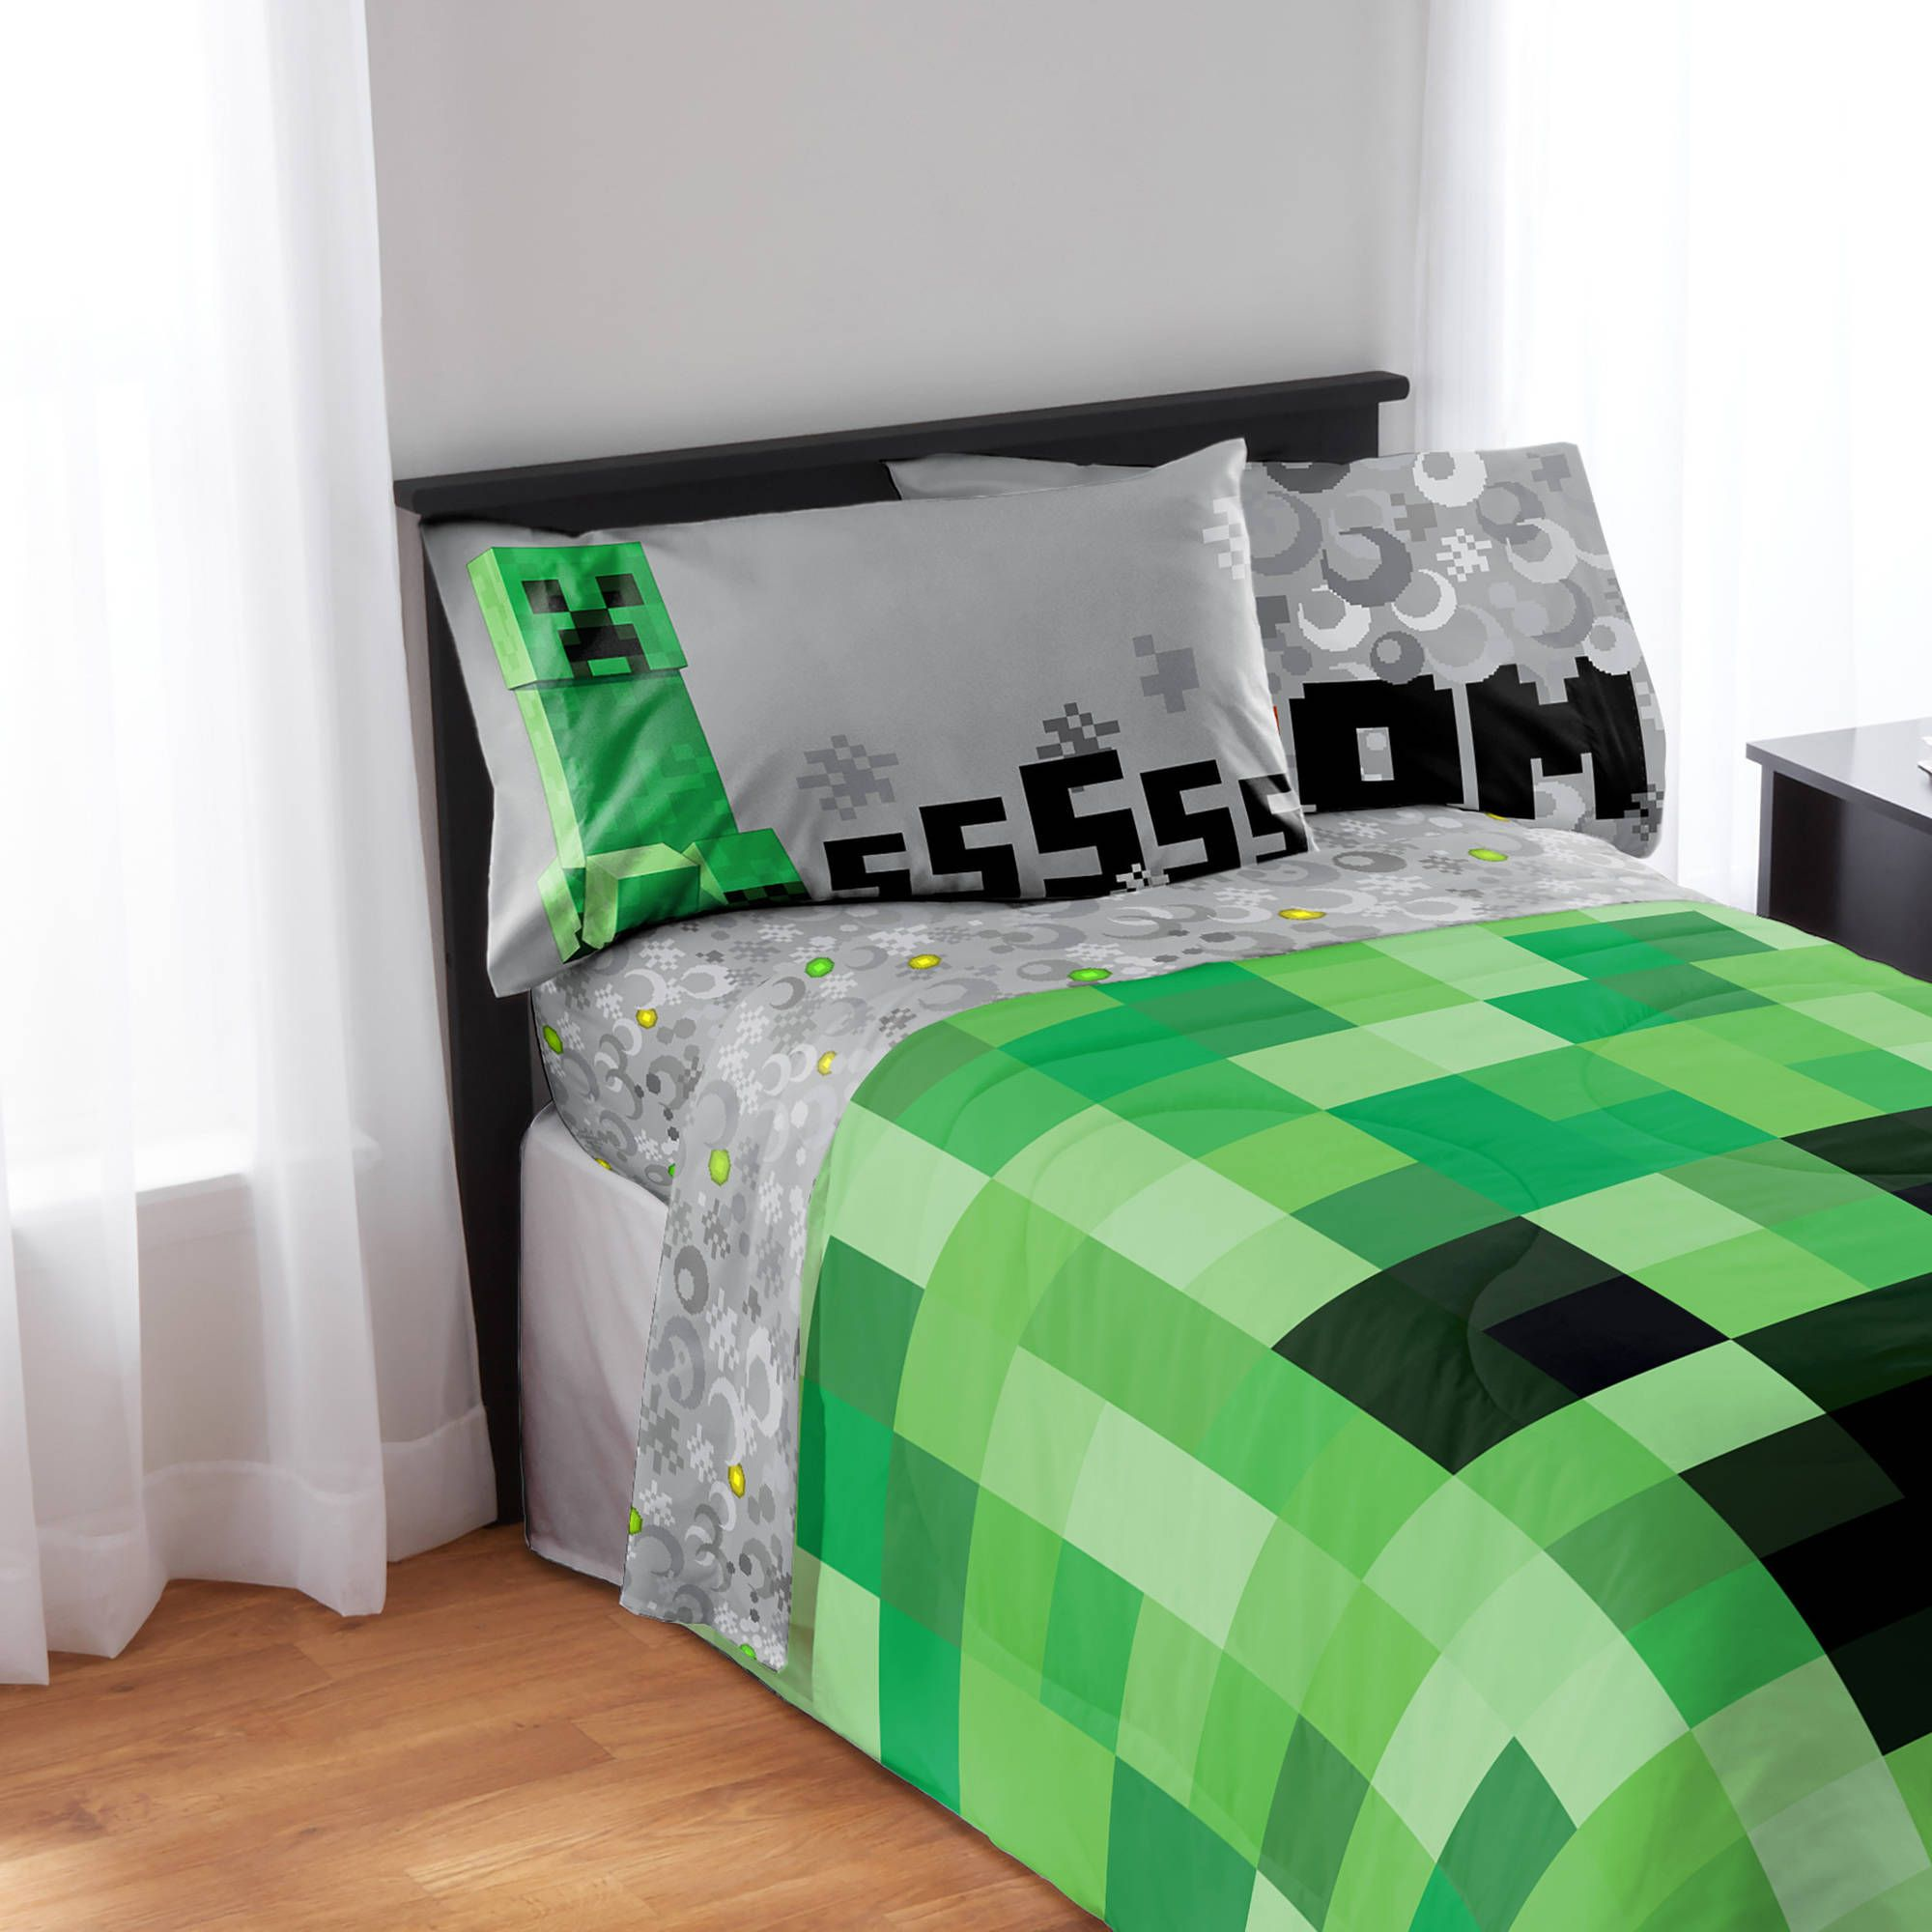 Minecraft Bedding Sheet Set